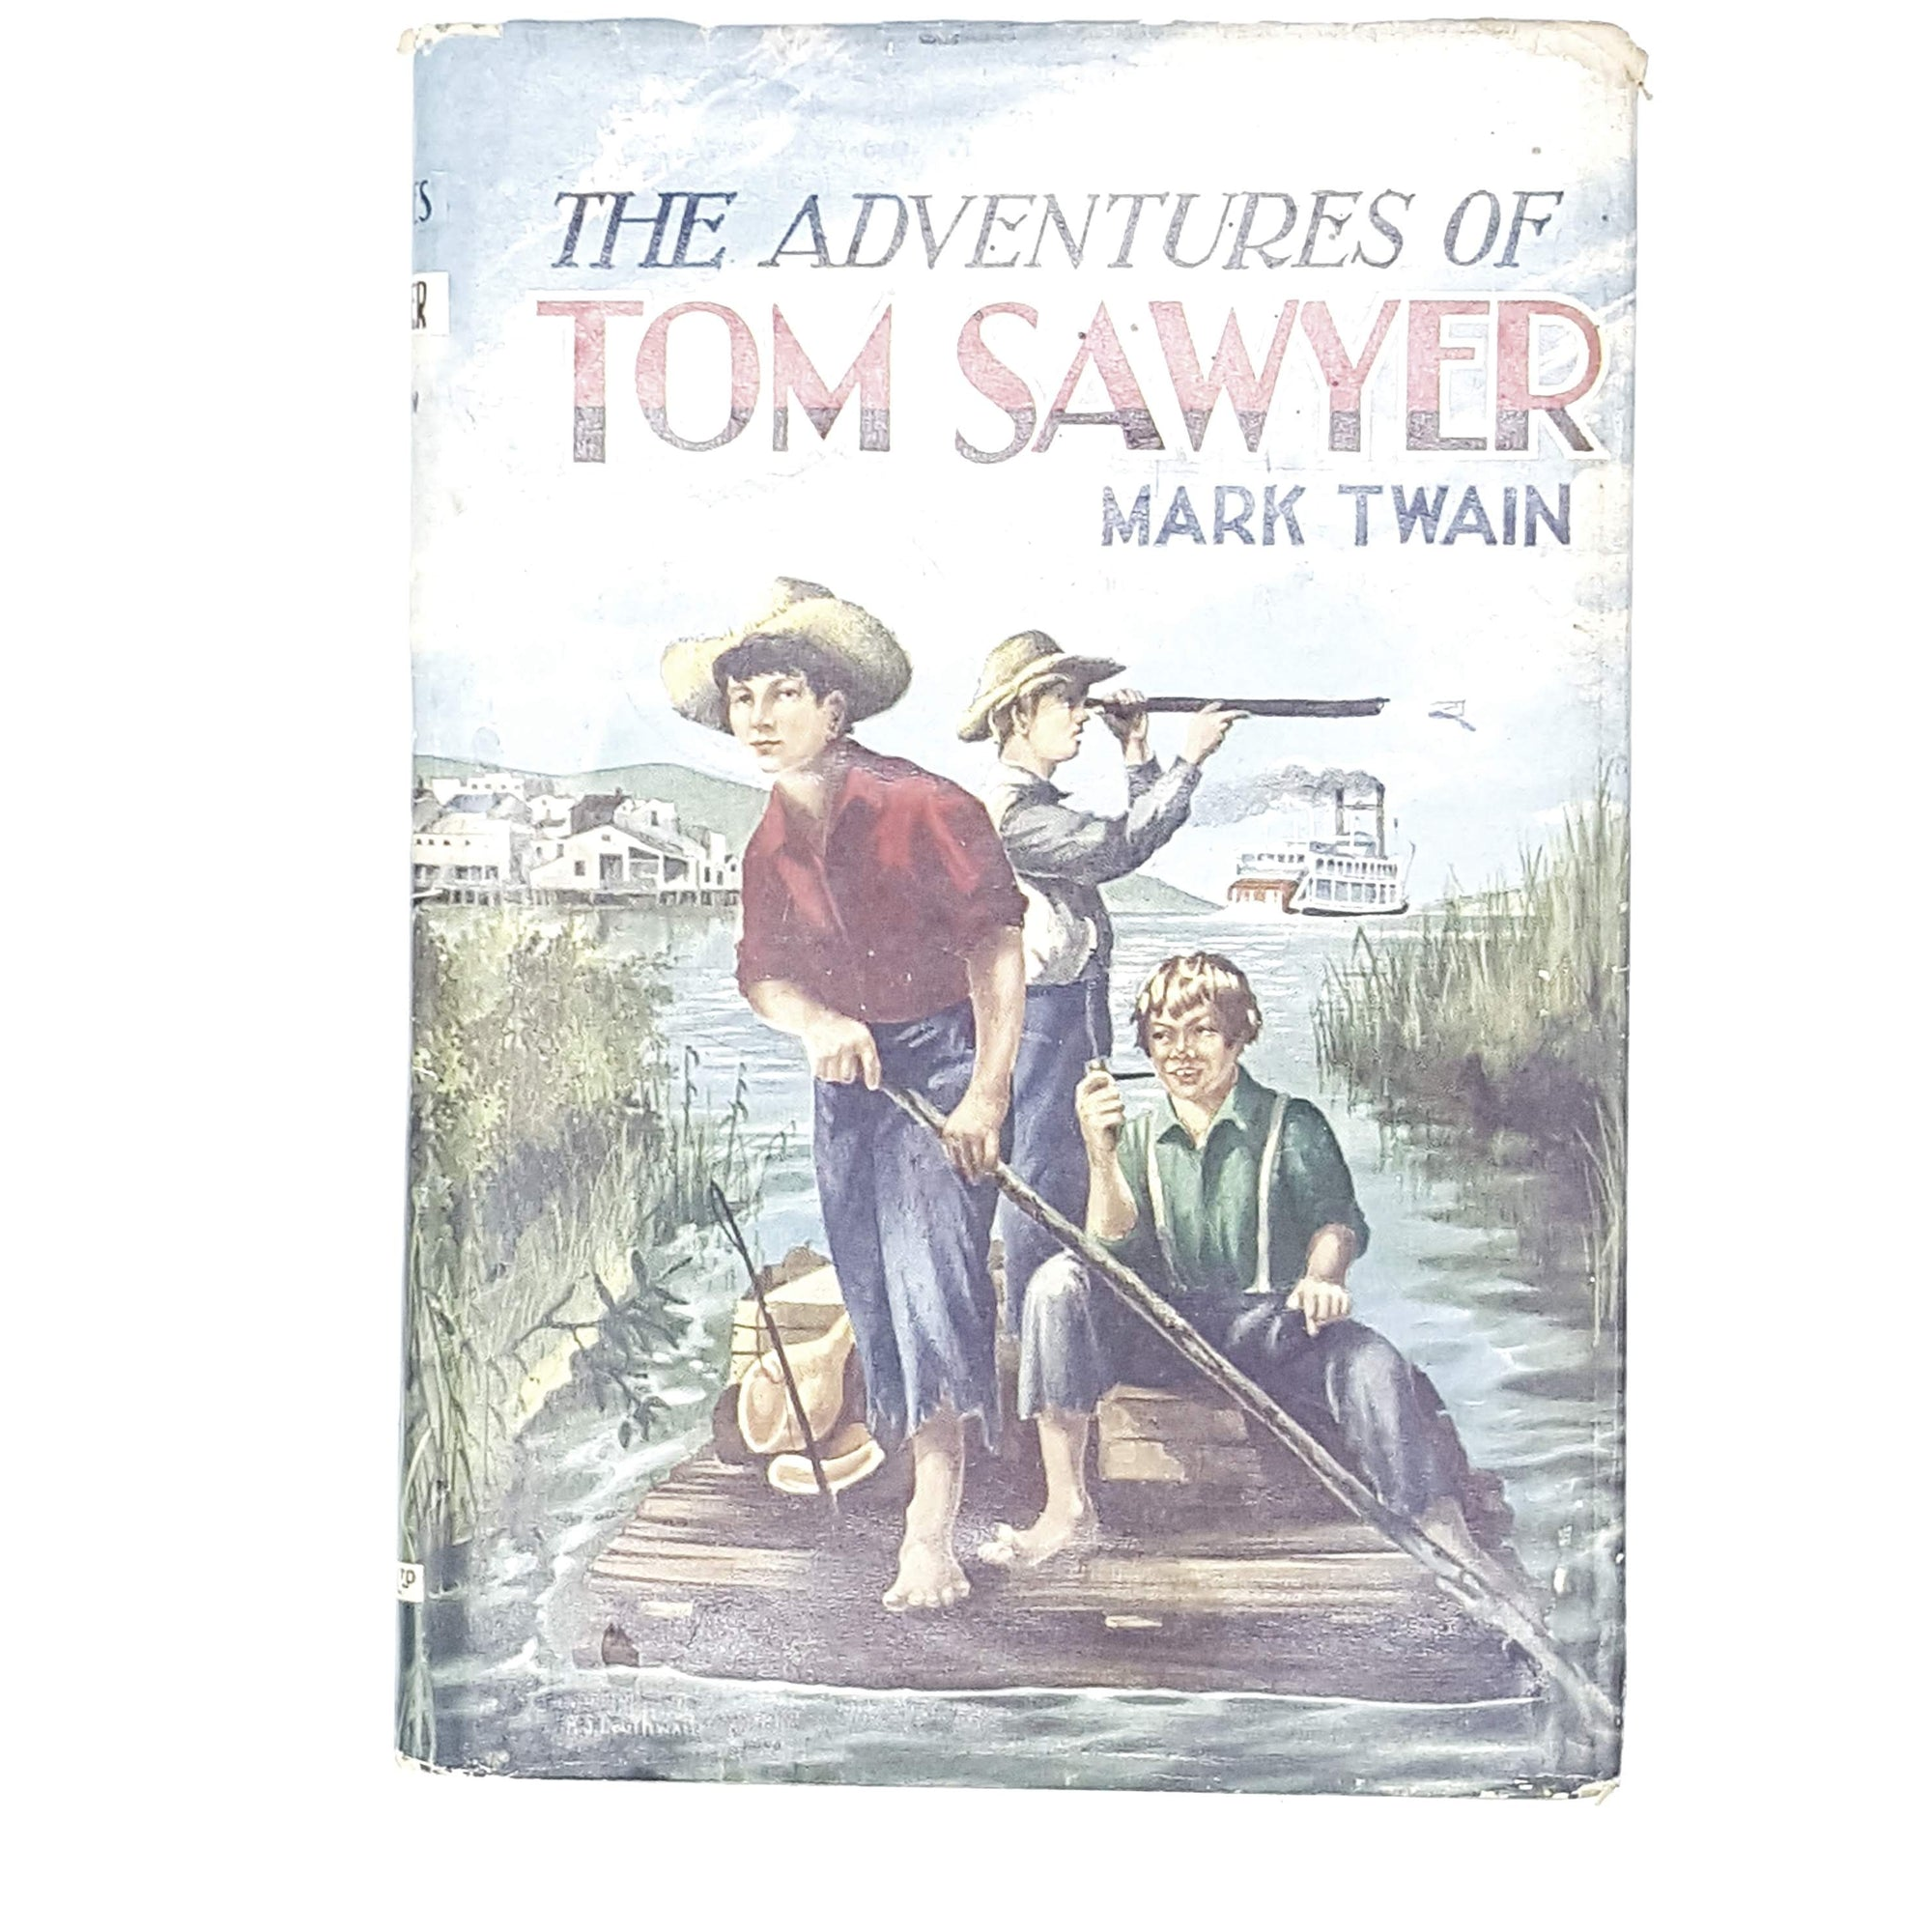 Mark Twain's The Adventures of Mark Sawyer